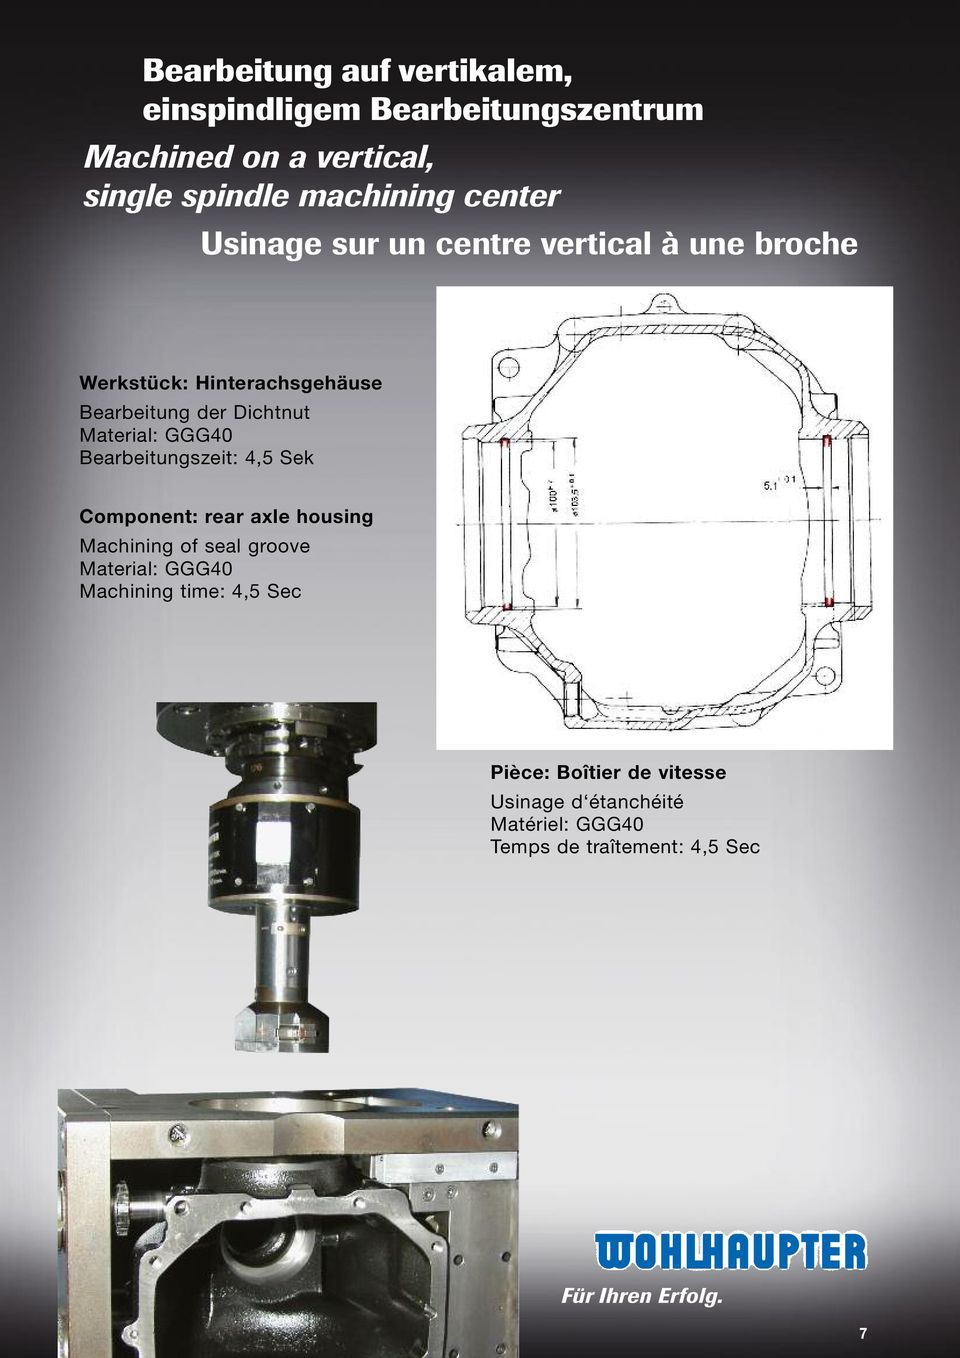 Material: GGG40 Bearbeitungszeit: 4,5 Sek Component: rear axle housing Machining of seal groove Material: GGG40